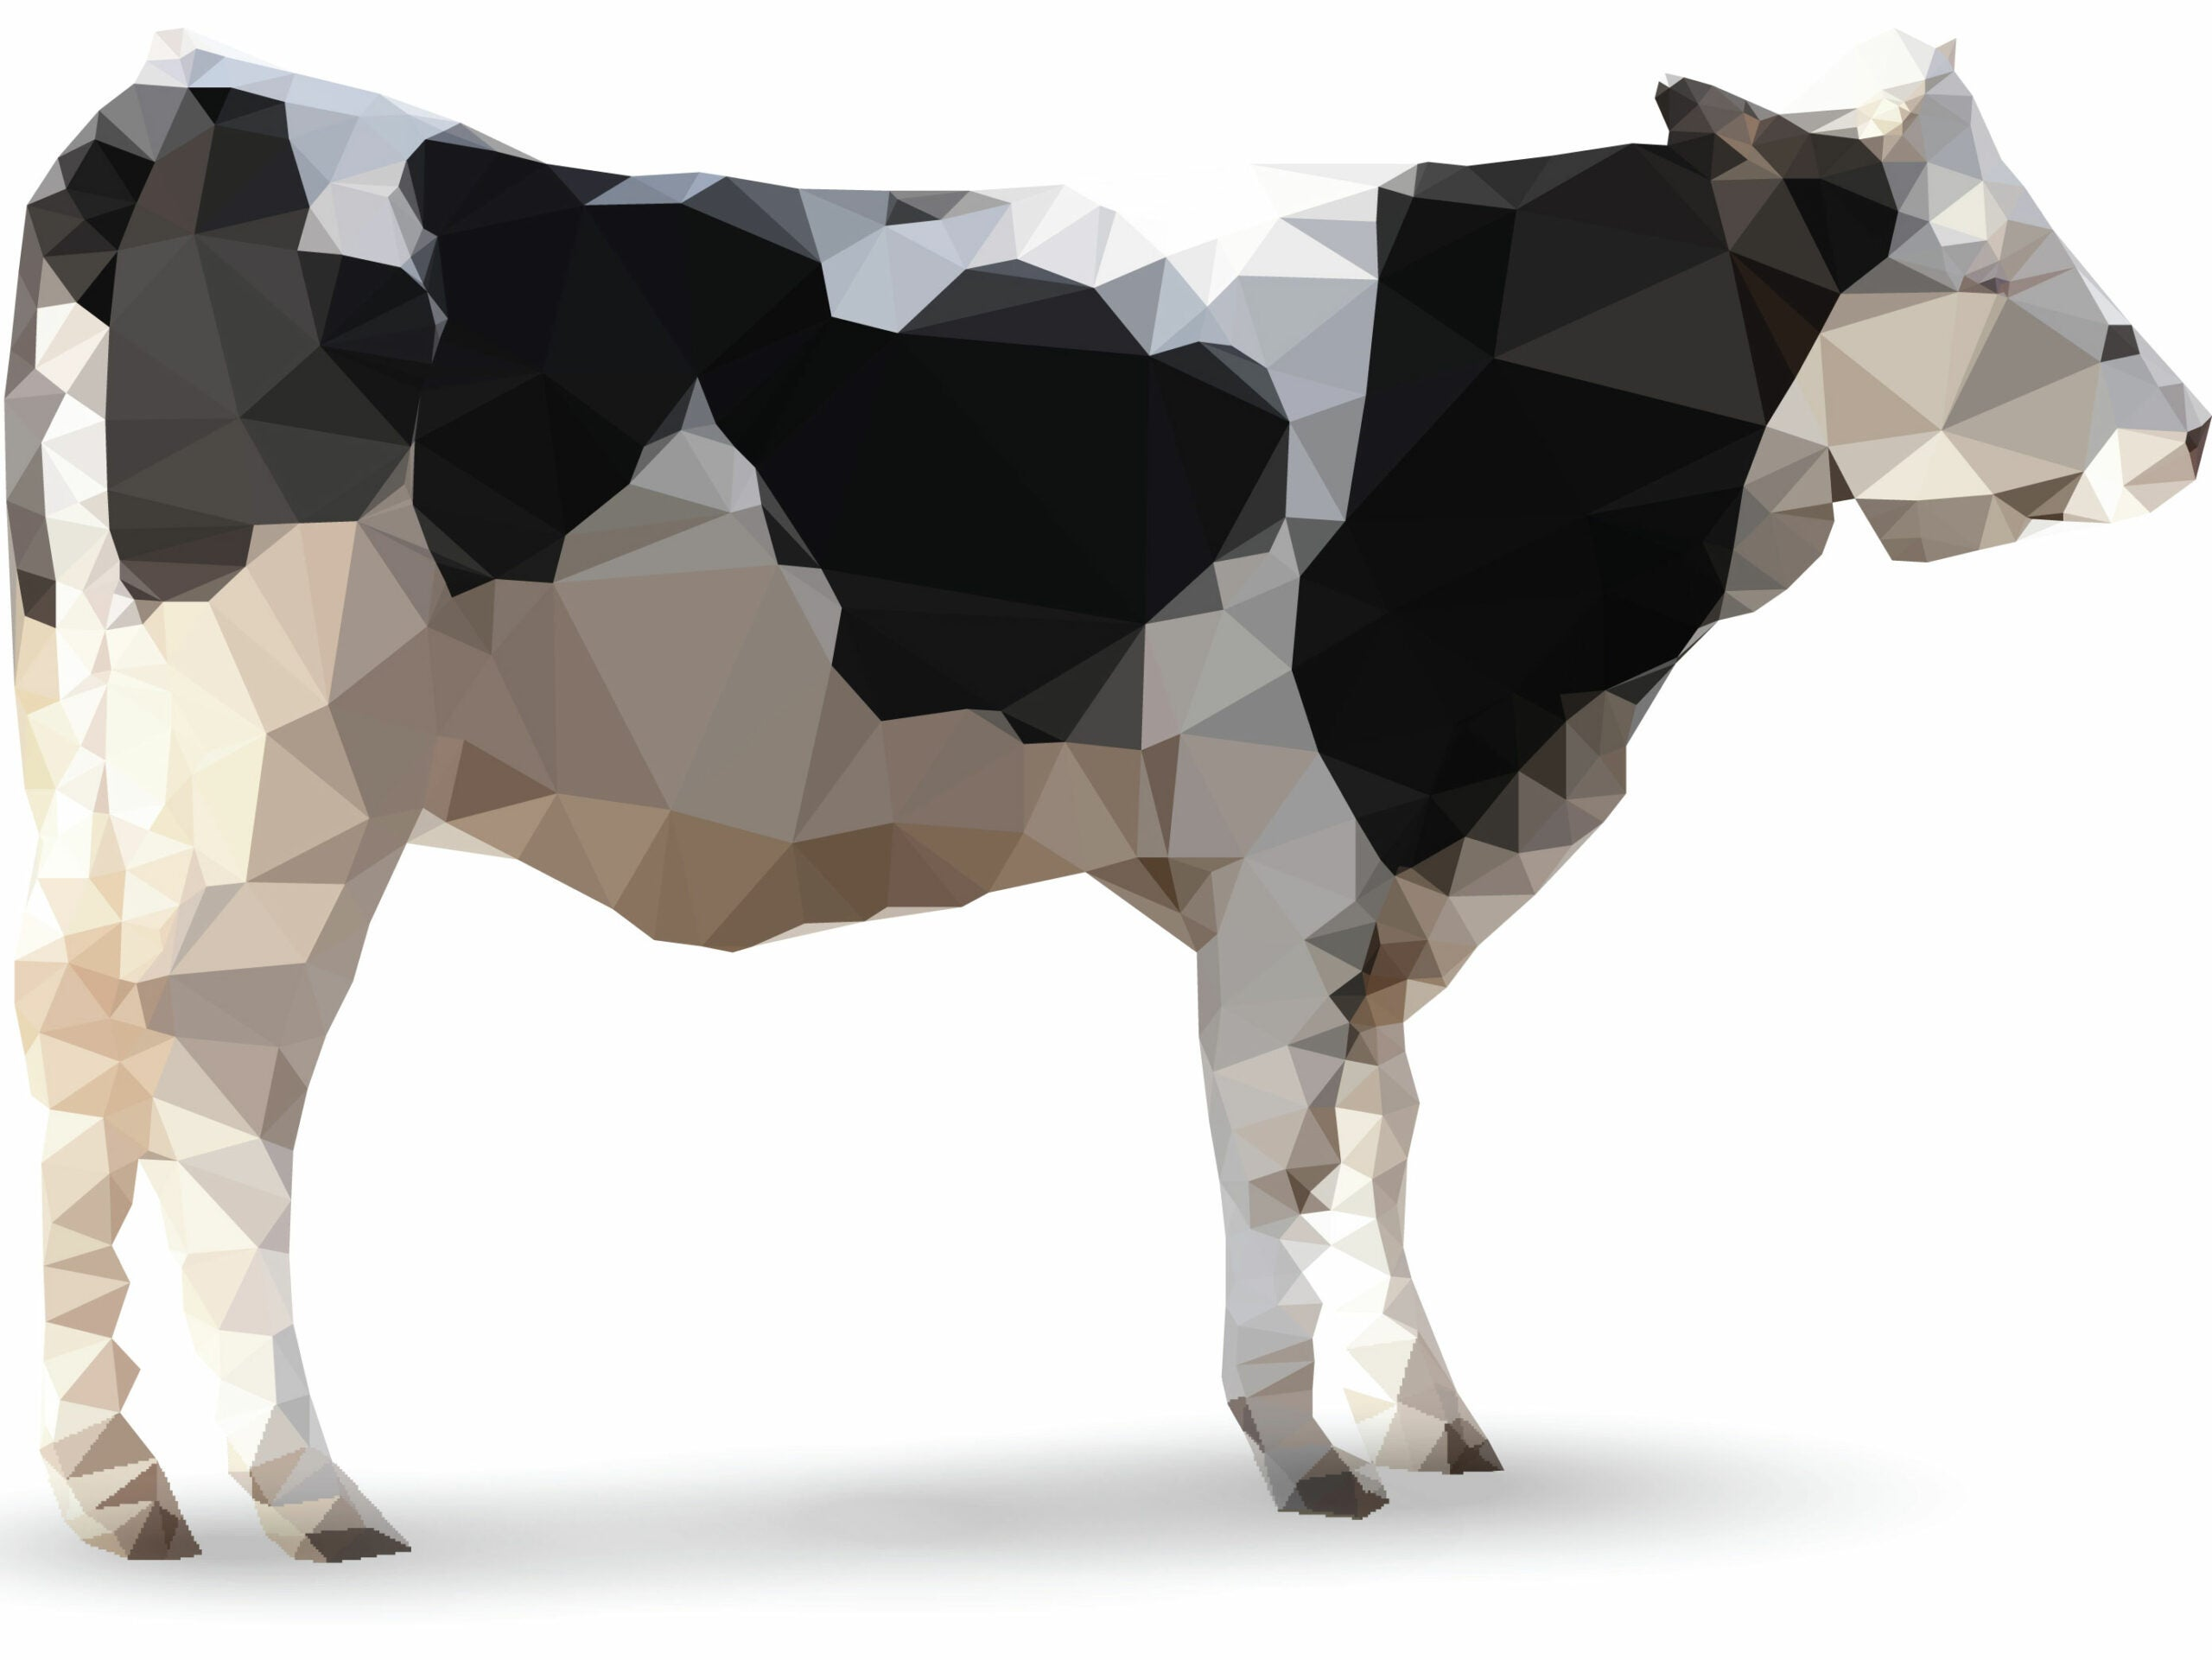 How Science Will Make Cows Obsolete